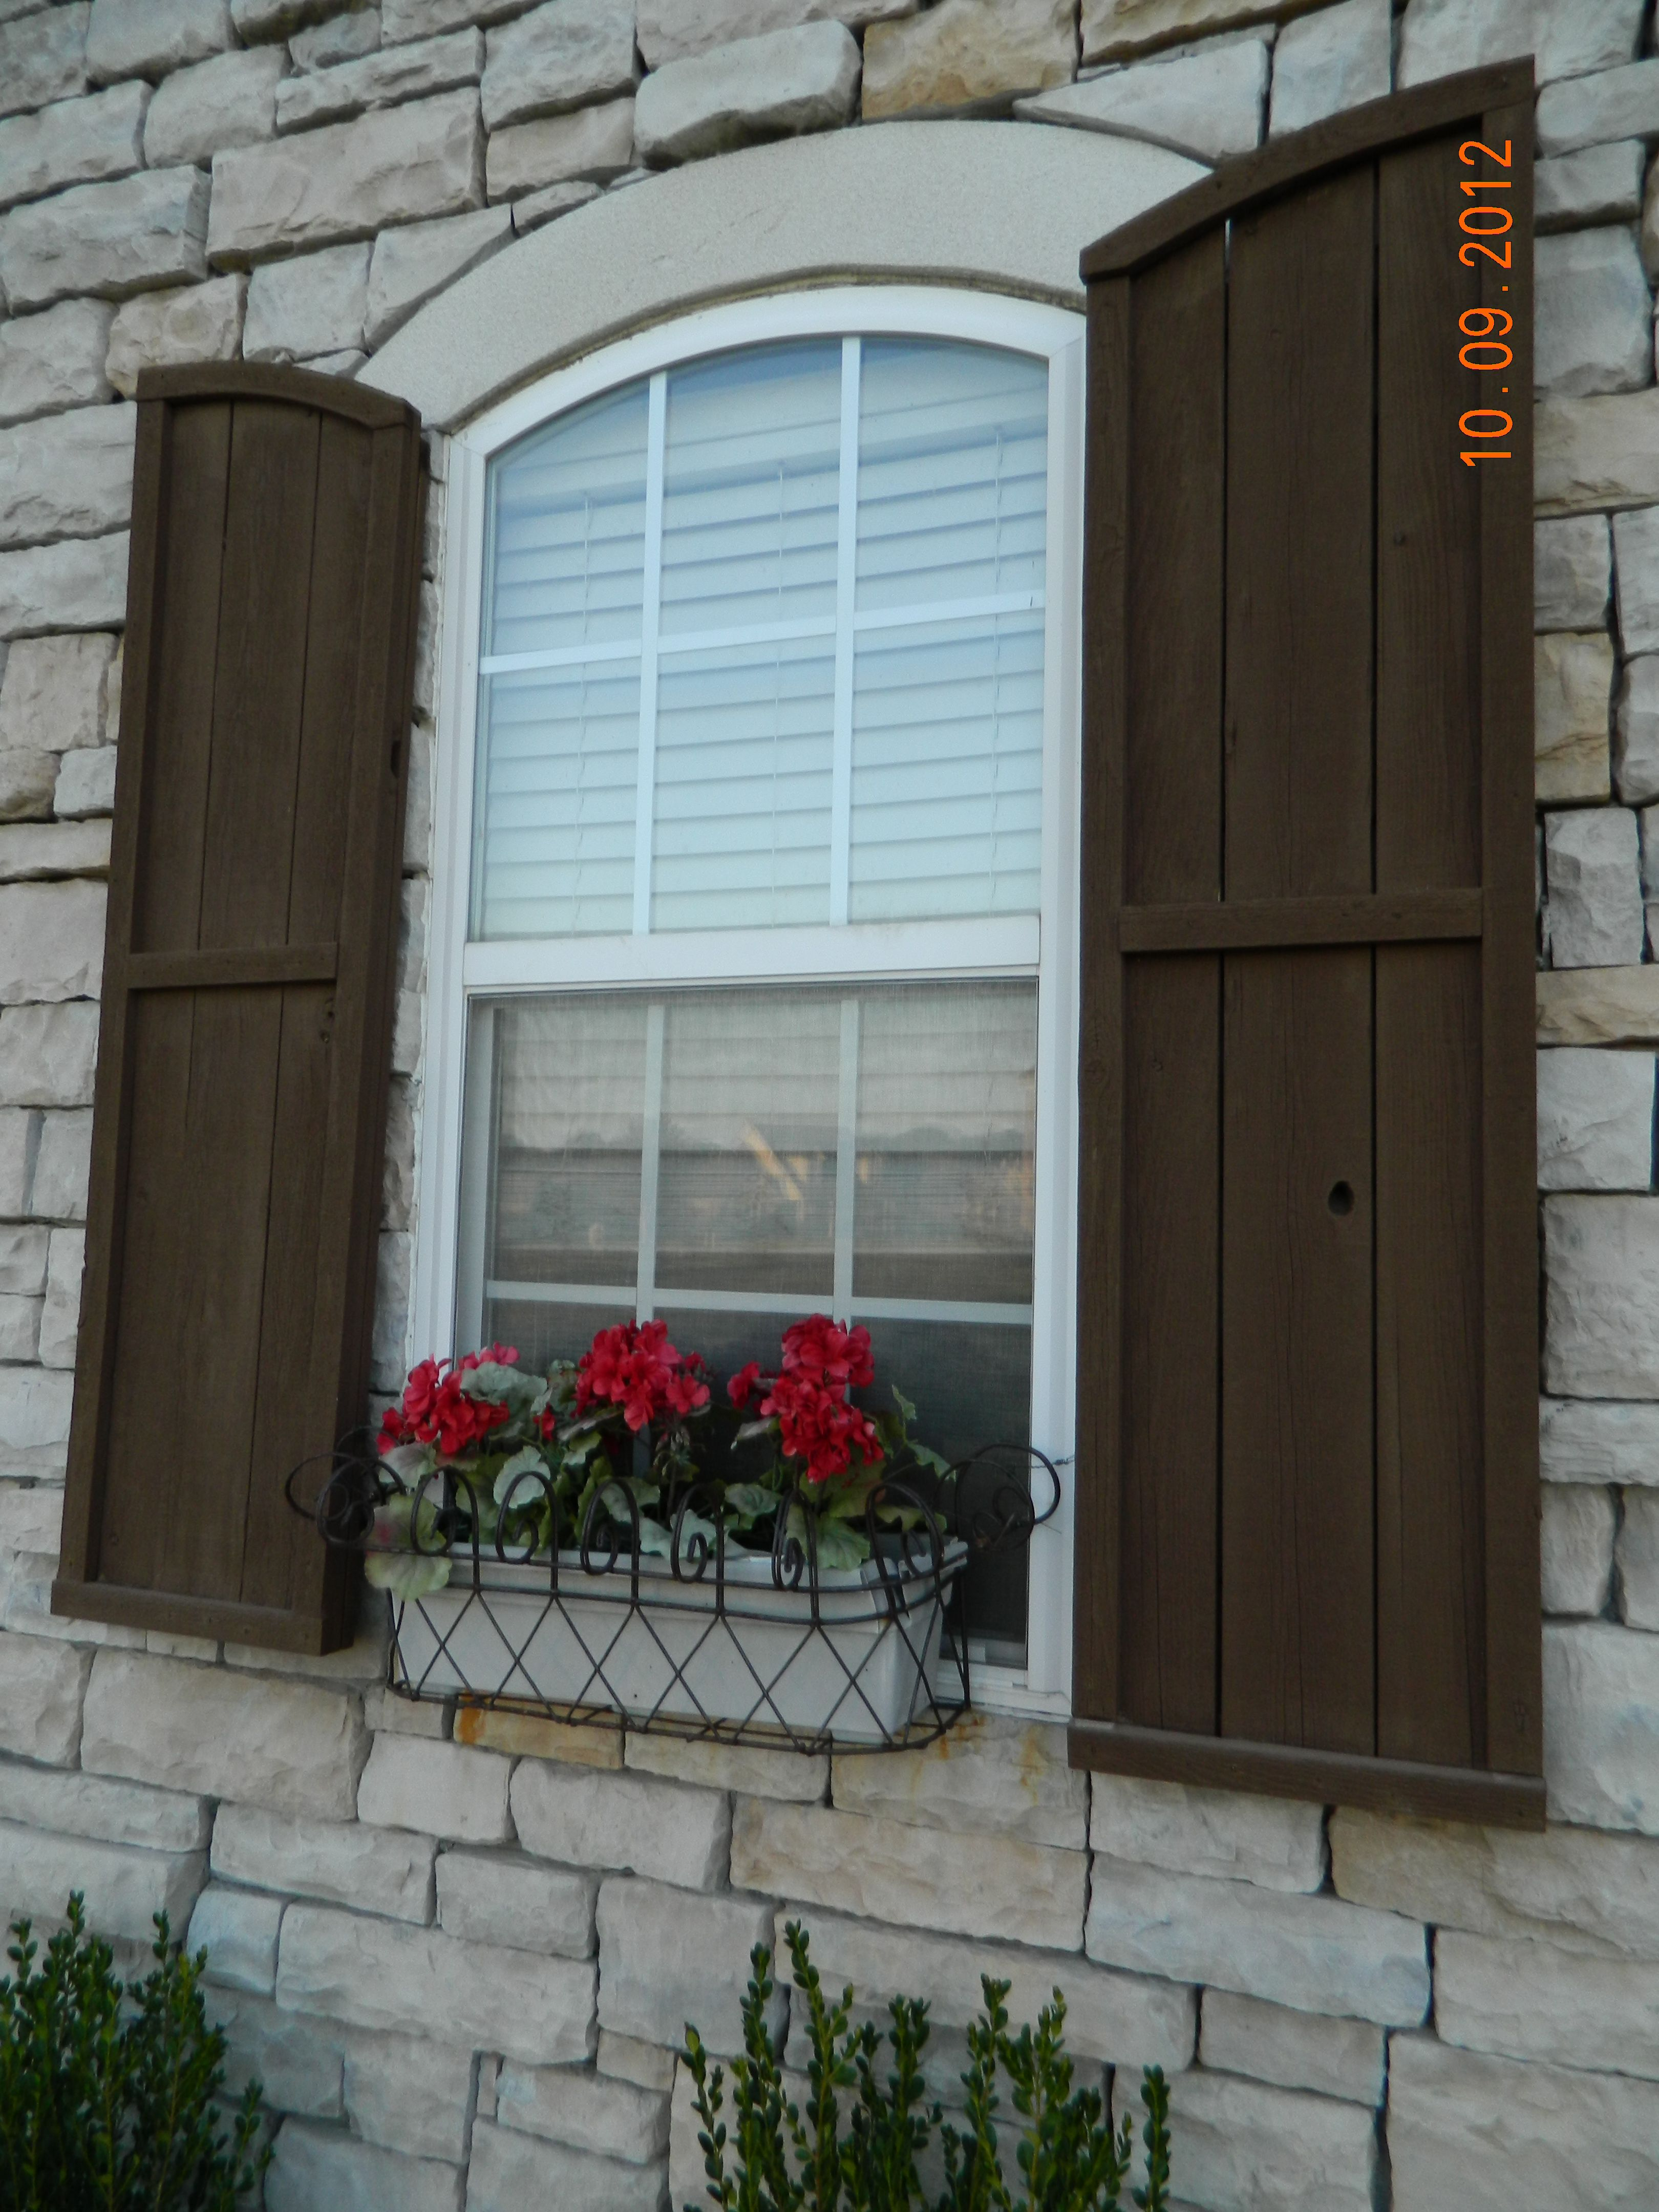 Window design for house exterior  arches made of stucco blend well with the stone walls wooden